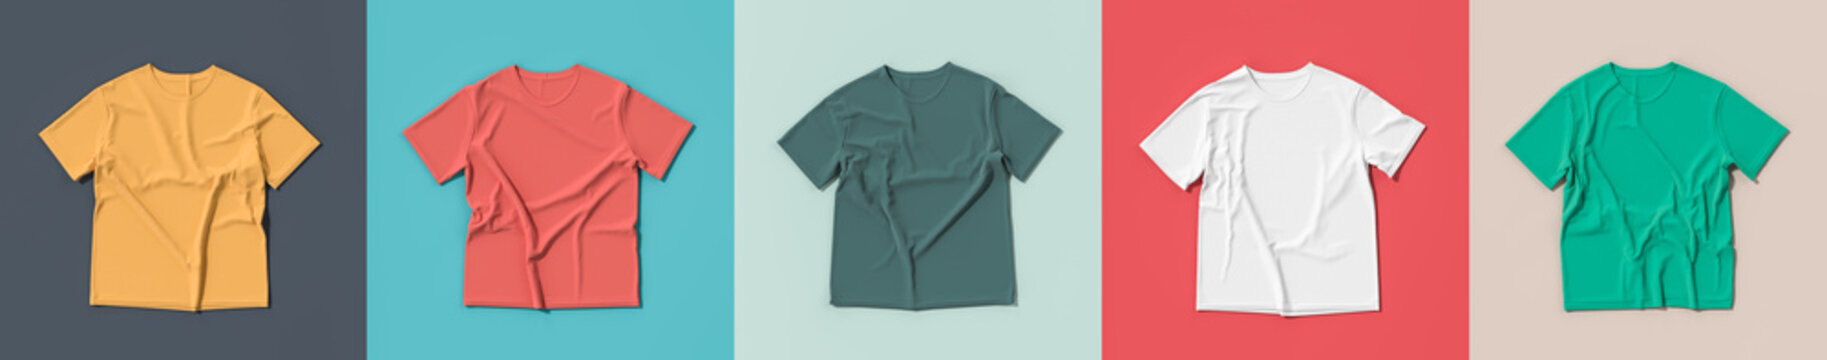 Colorful t-shirts on colorful background. t-shirt mock ups with five different colours.3D illustration